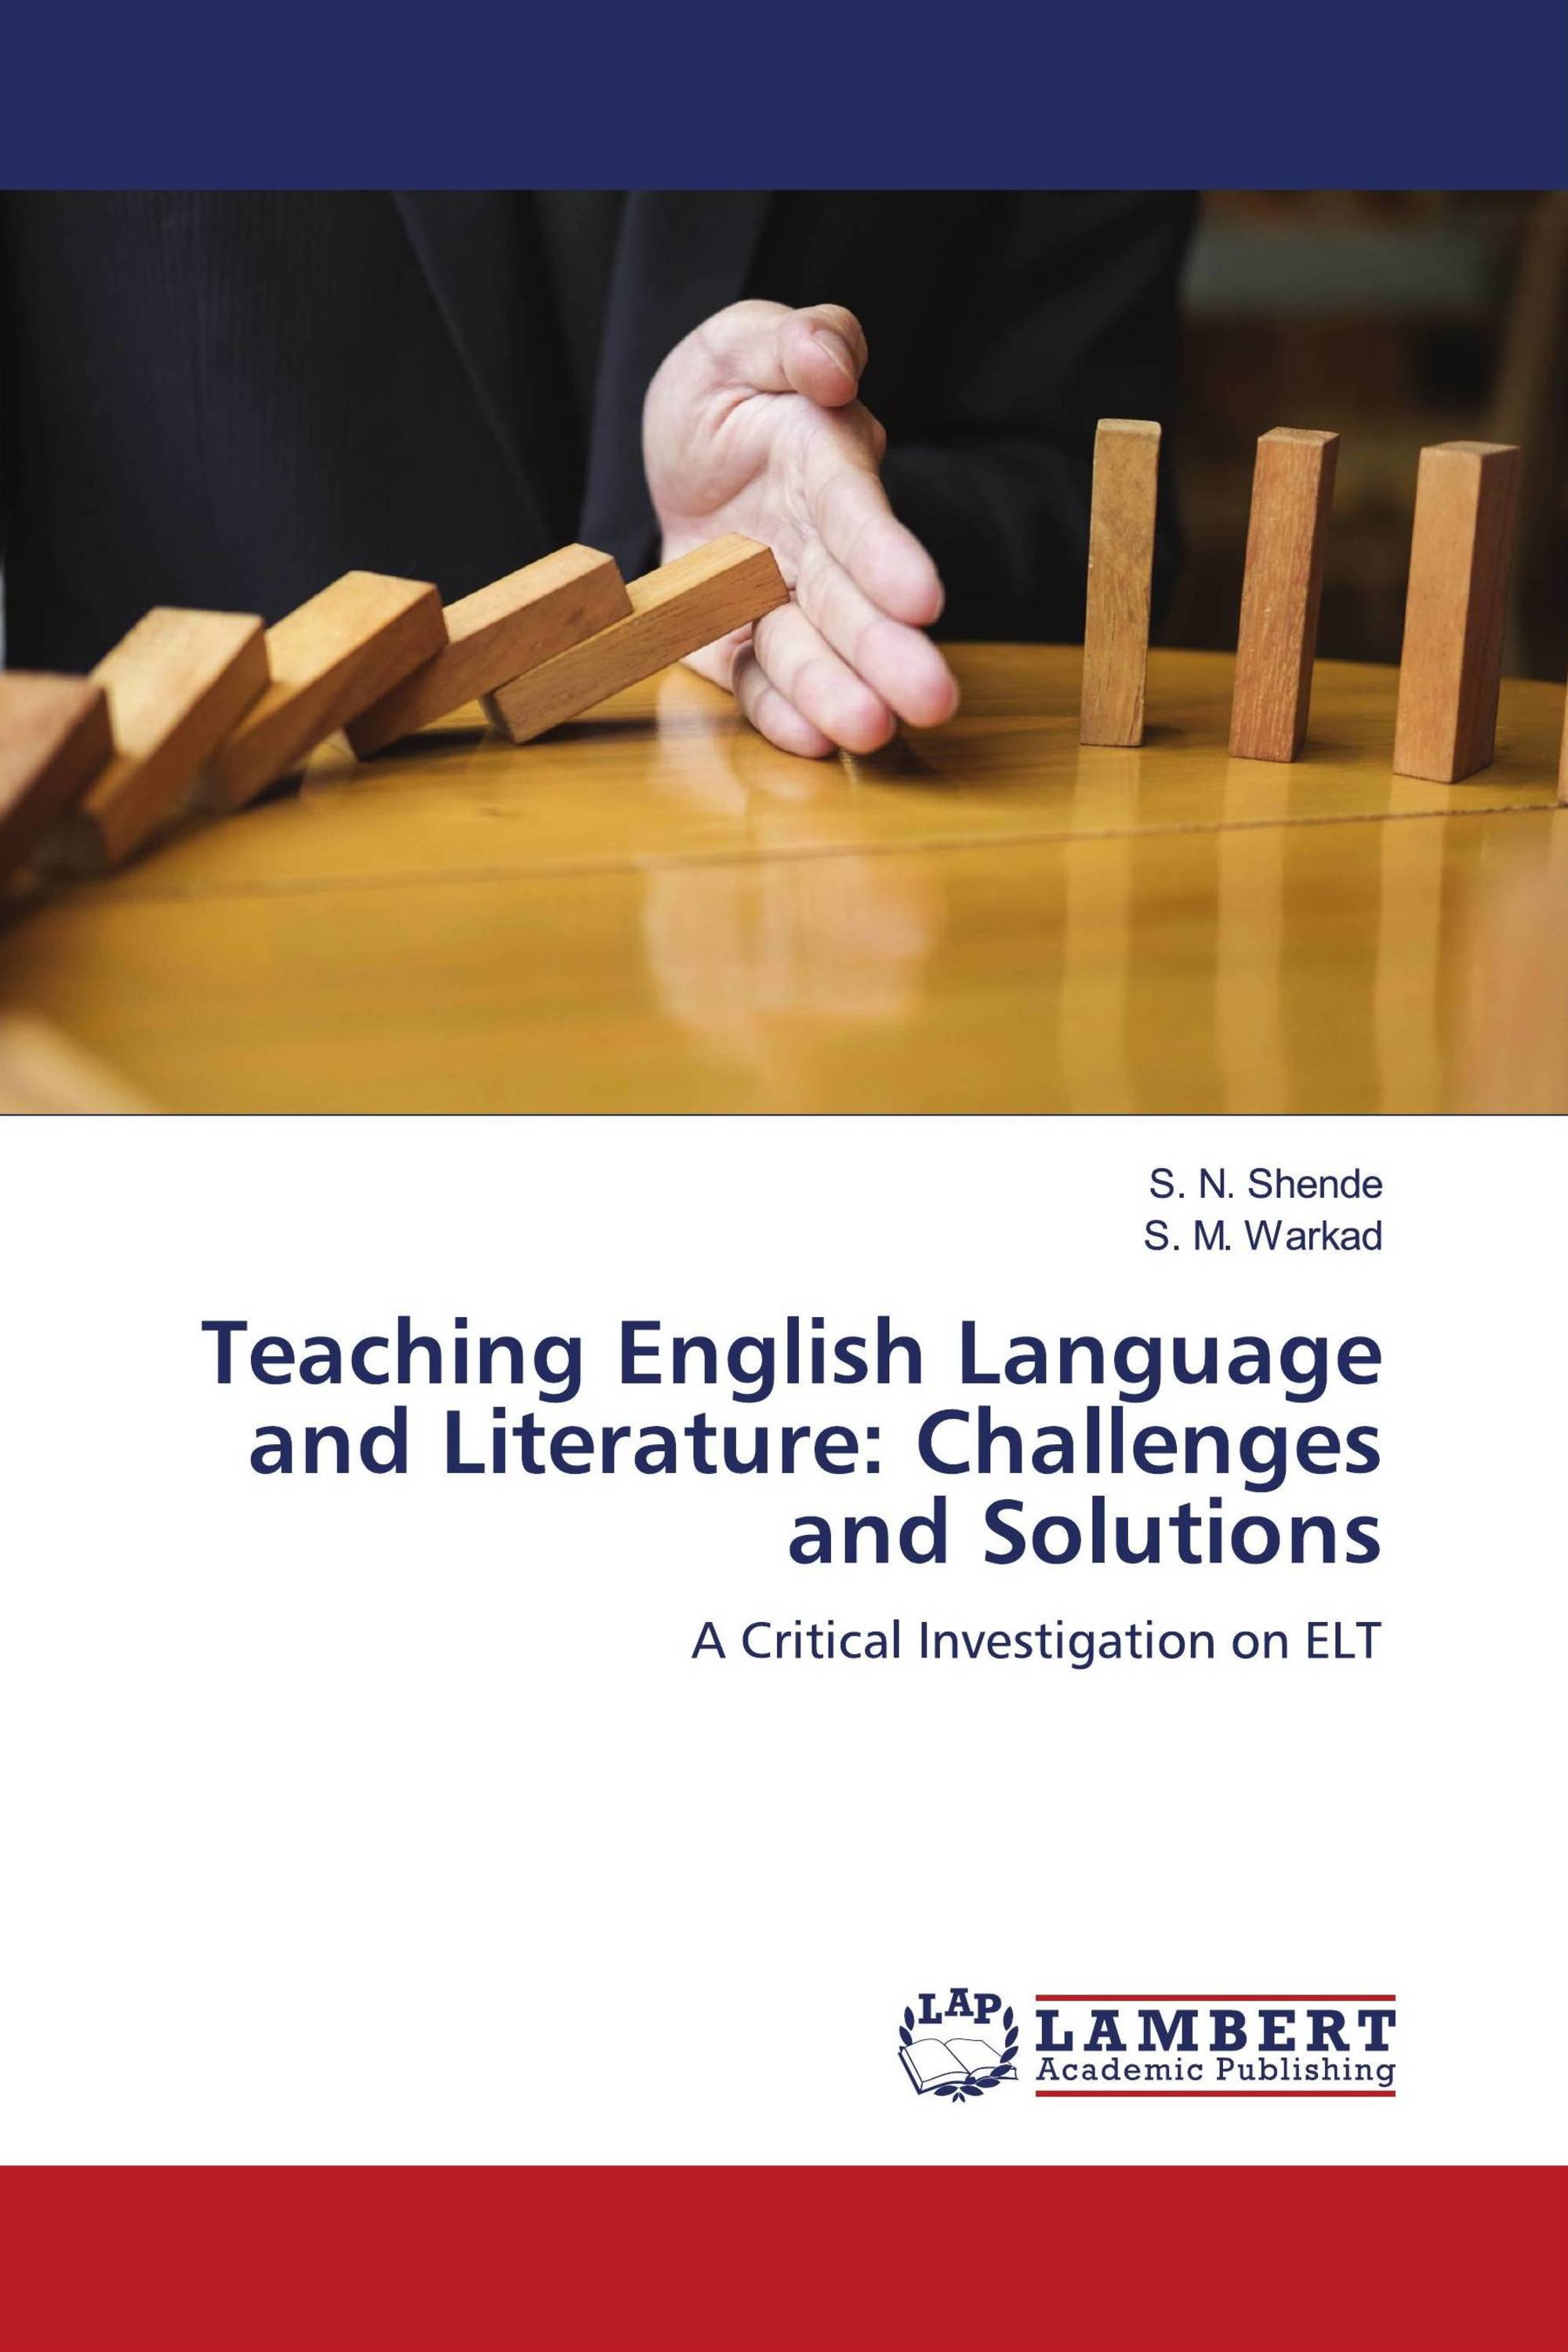 Teaching English Language and Literature: Challenges and Solutions